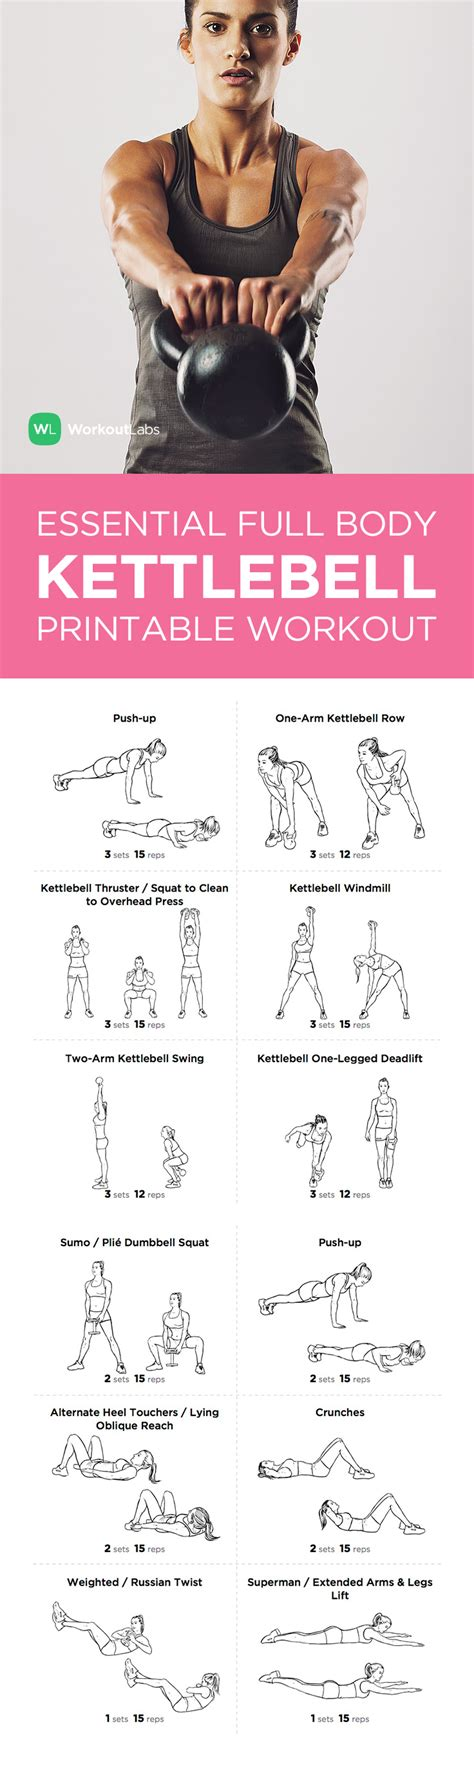 kettlebell workout printable body workouts fitness workoutlabs pdf gym essential exercises total exercise kettle weight plans visit bell plan arm